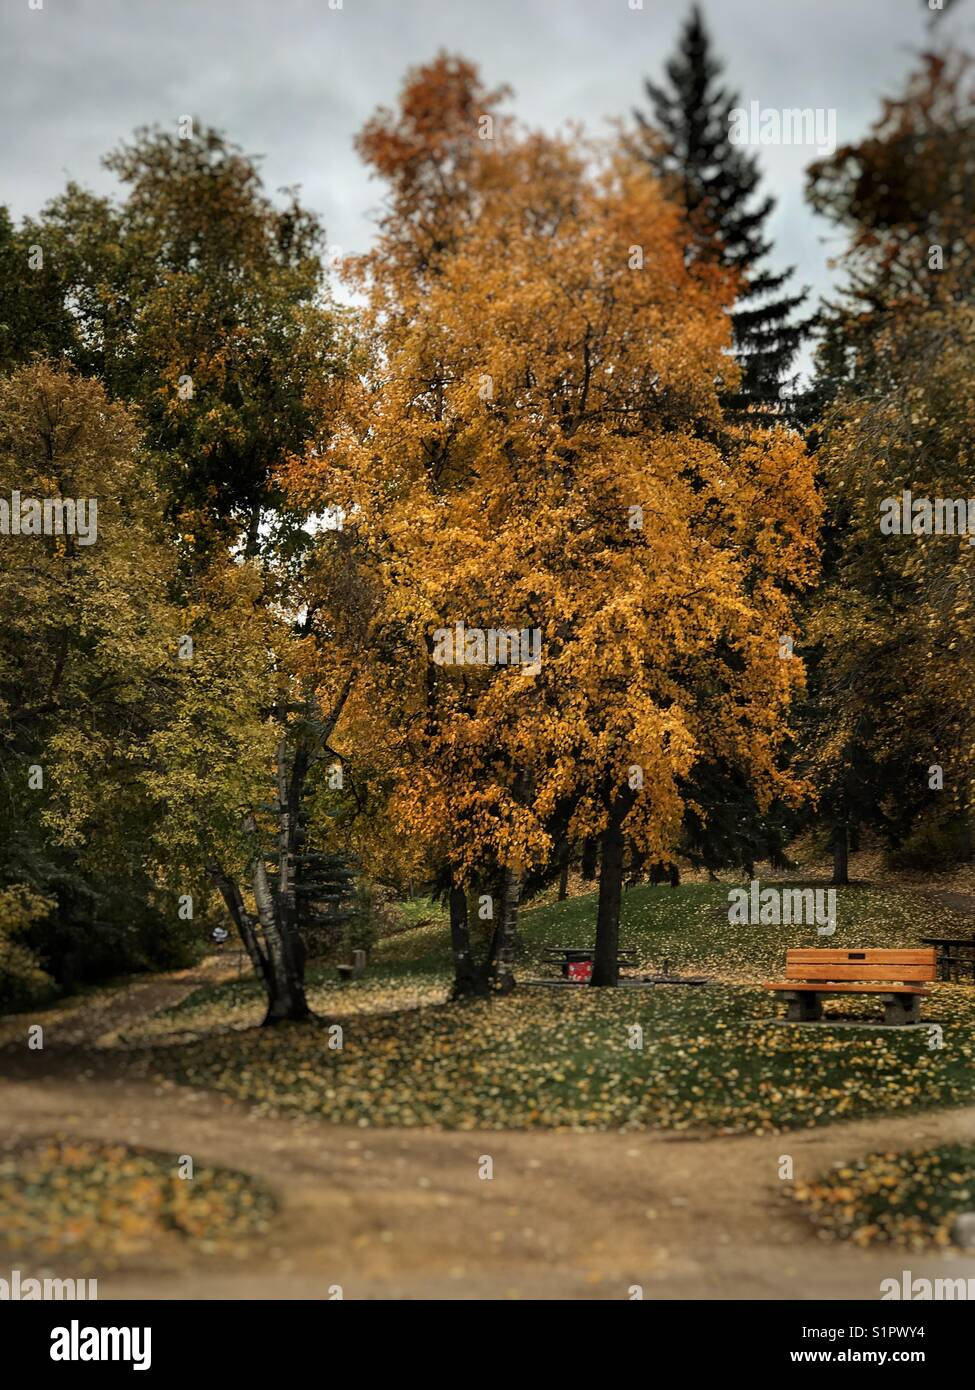 Autumn leaves, Edmonton - Stock Image